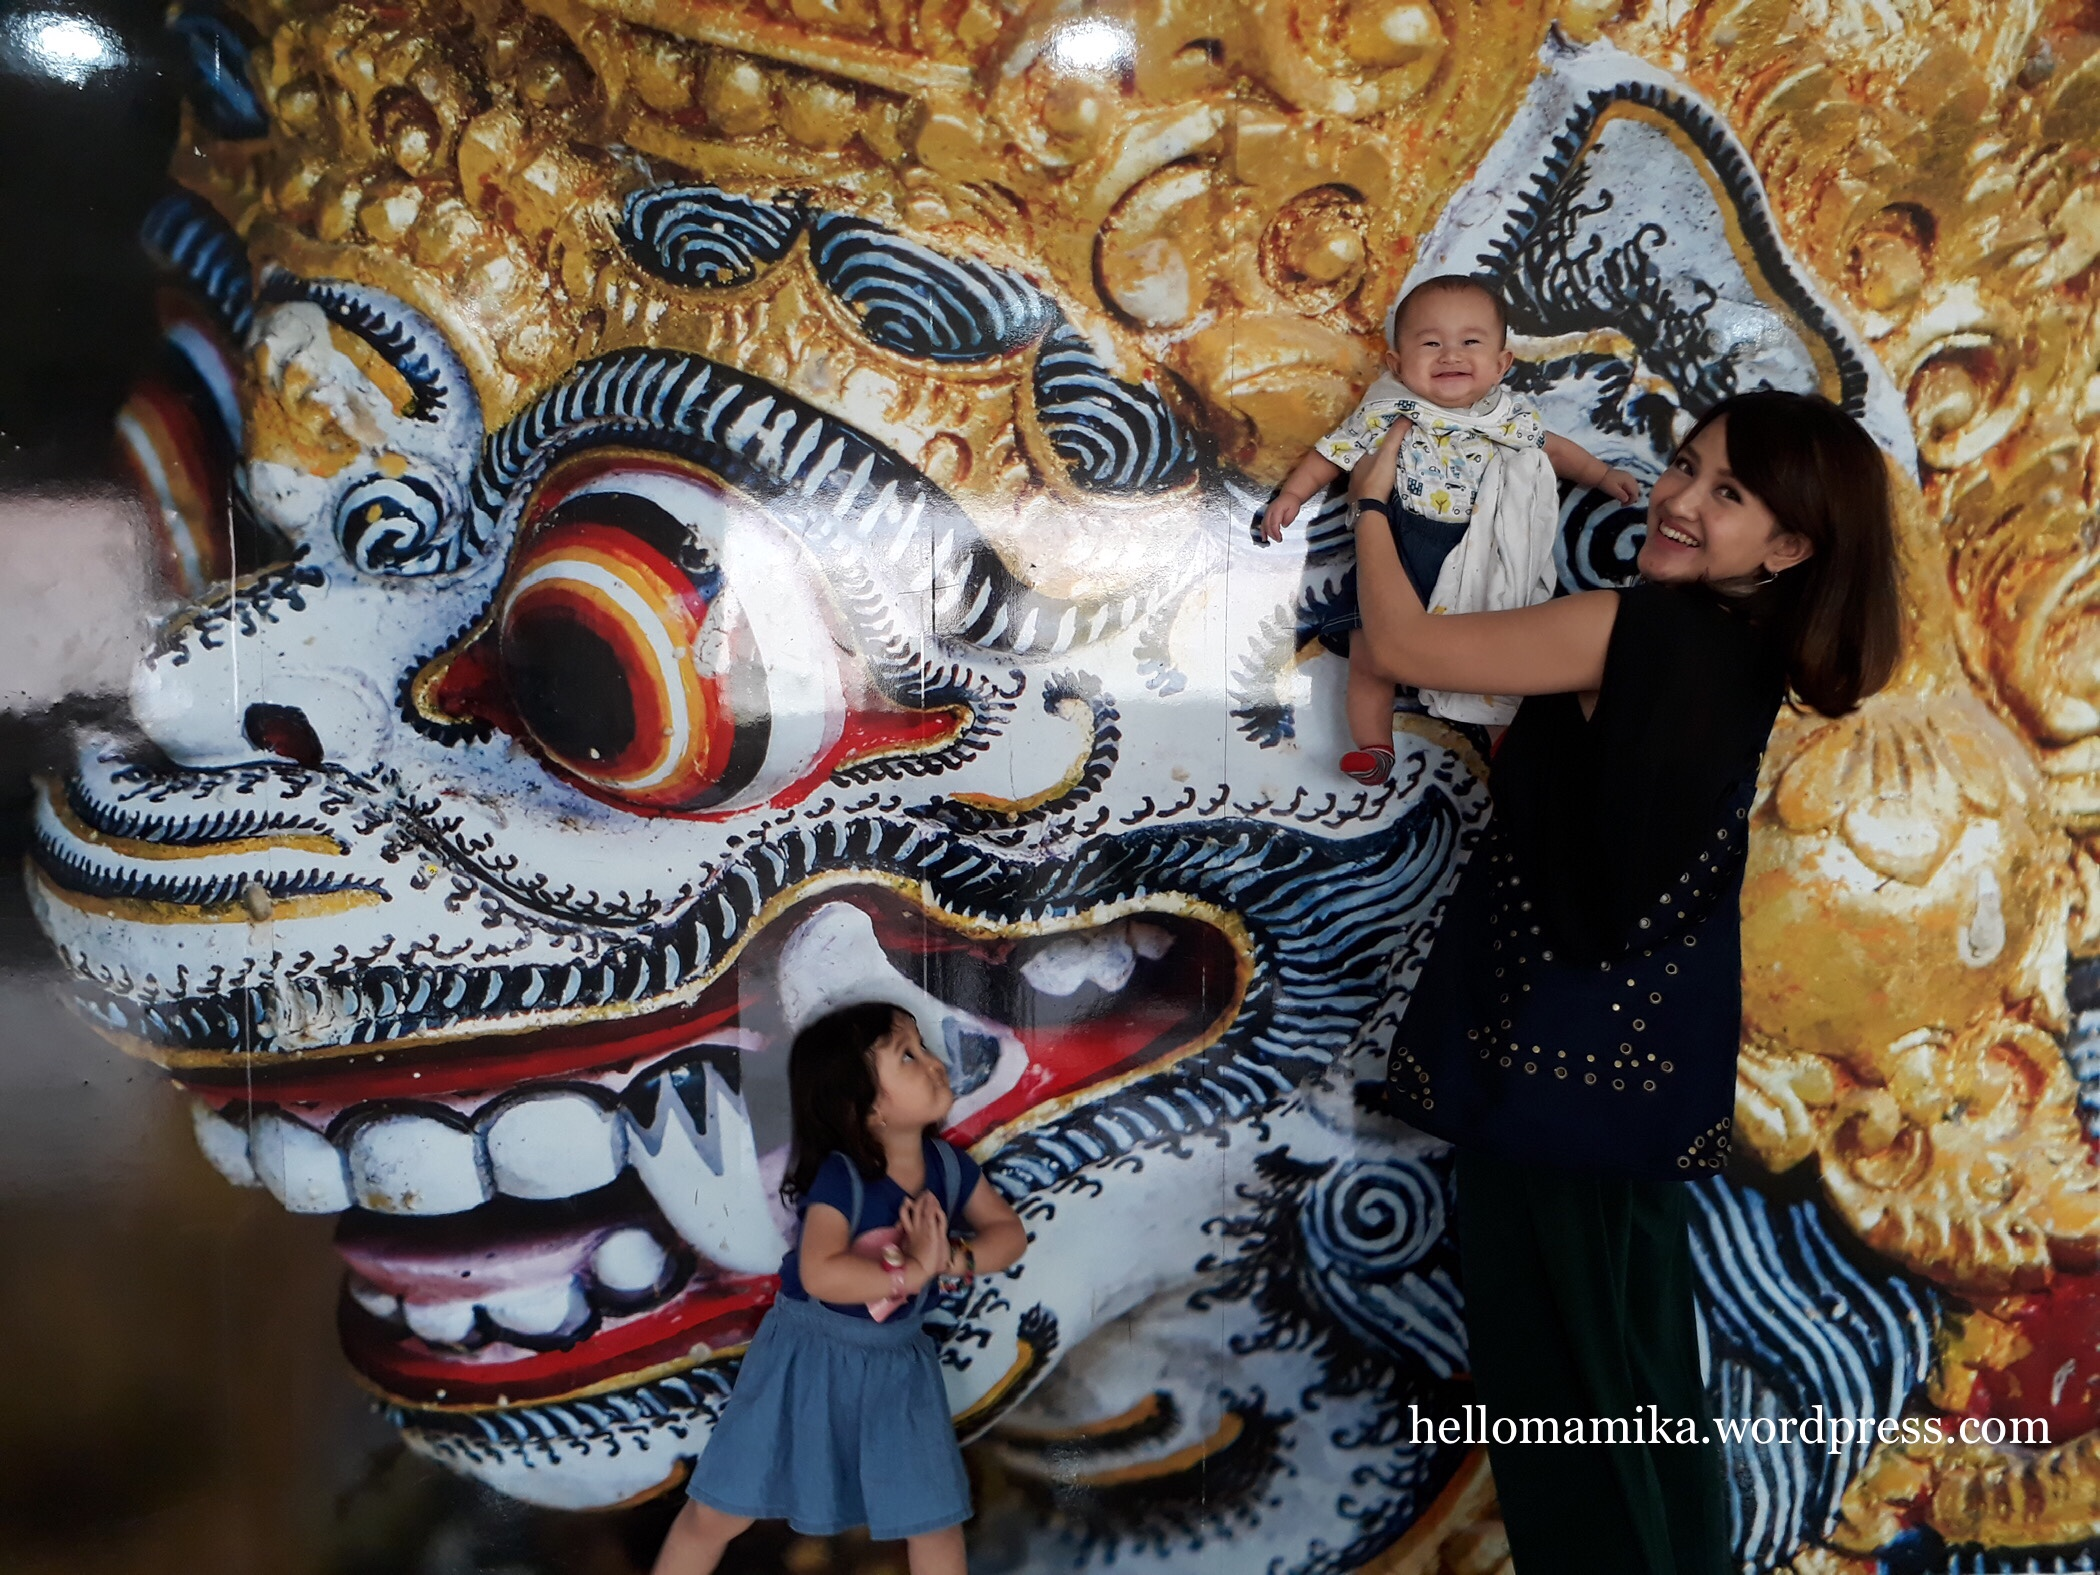 UNPLANNED TRIP TO BALI WITH 2 LITTLE KIDS (2017)